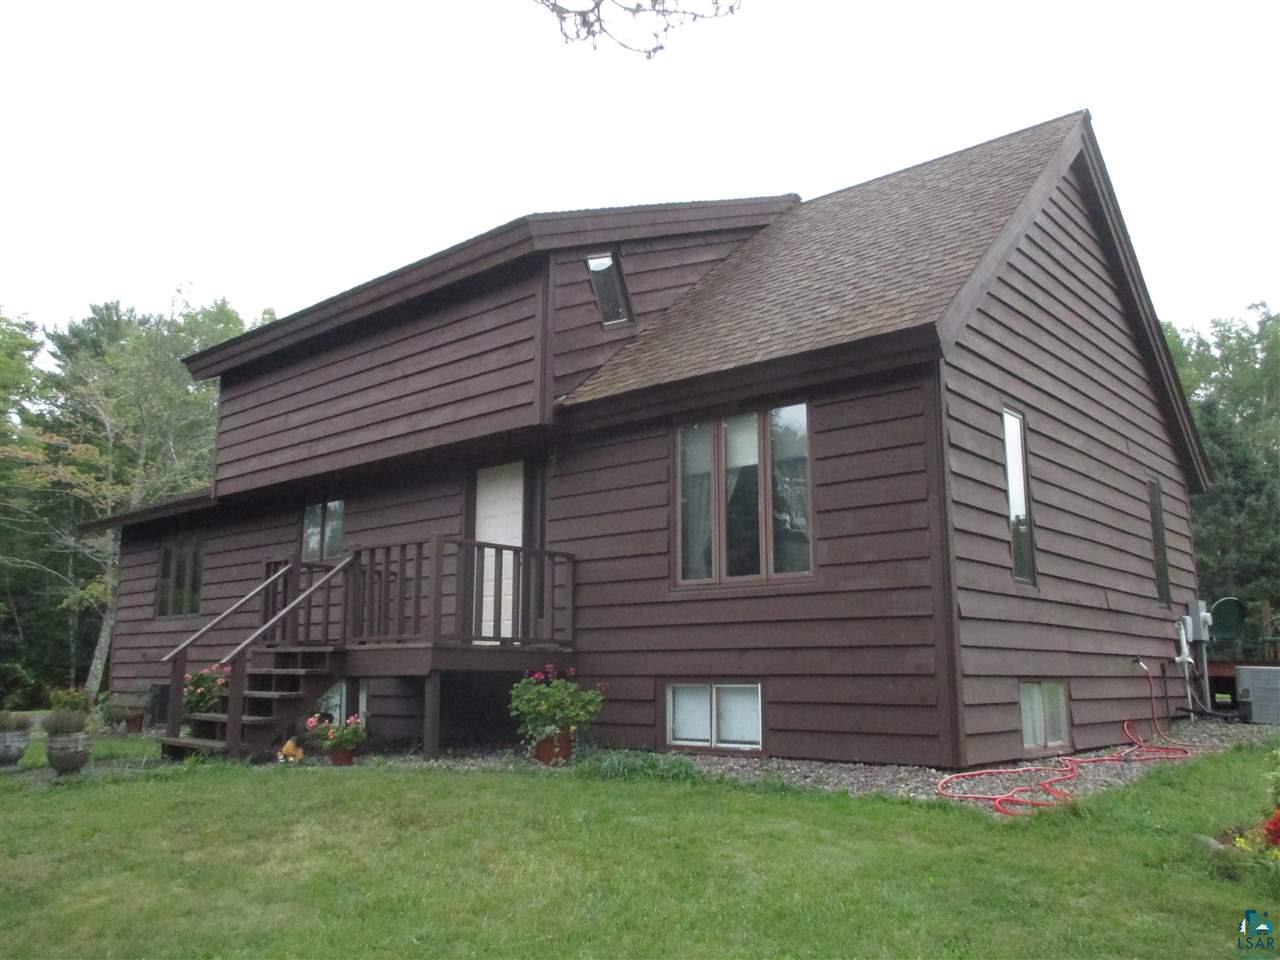 """Cornucopia headquarters! Wisconsin's northernmost town, gateway to the Apostle Islands & the Sea/Ice Caves. This well-maintained home is an easy walk to fantastic beaches, marina, Siskiwit River, shops, dining & near state & county natural areas, trails & forests. Solidly built 2-story home has a living room with an open staircase and cathedral ceiling, beautiful solid wood walls in some rooms and gorgeous Alder kitchen cabinets. Upper loft area has two sweet areas for study or reading, plus two bedrooms & full bath. Main floor bedroom plus office/den with laundry, or use as bedroom. Lower level has two bedrooms plus recreation room & a huge storage/utility room. Very energy-efficient, with southern exposure & 3 cedar decks. Detached two-car garage plus HUGE 30' x 48' """"stick-built"""" storage building with 8"""" thick concrete floor, 12' sidewalls, 3 10x10 overhead doors so you can drive right through! Circular driveway with new gravel. This site is nicely sheltered from the road with pines, spruce, apple trees and a sunny yard perfect for flowers & gardens. Make this your headquarters for fishing, kayaking, sailing, birding & all kinds of winter activities. Perfect setting for a home-based business with high-speed Internet, excellent exposure & outbuildings. Or just kick back and enjoy this friendly little community and get to know your neighbors!"""